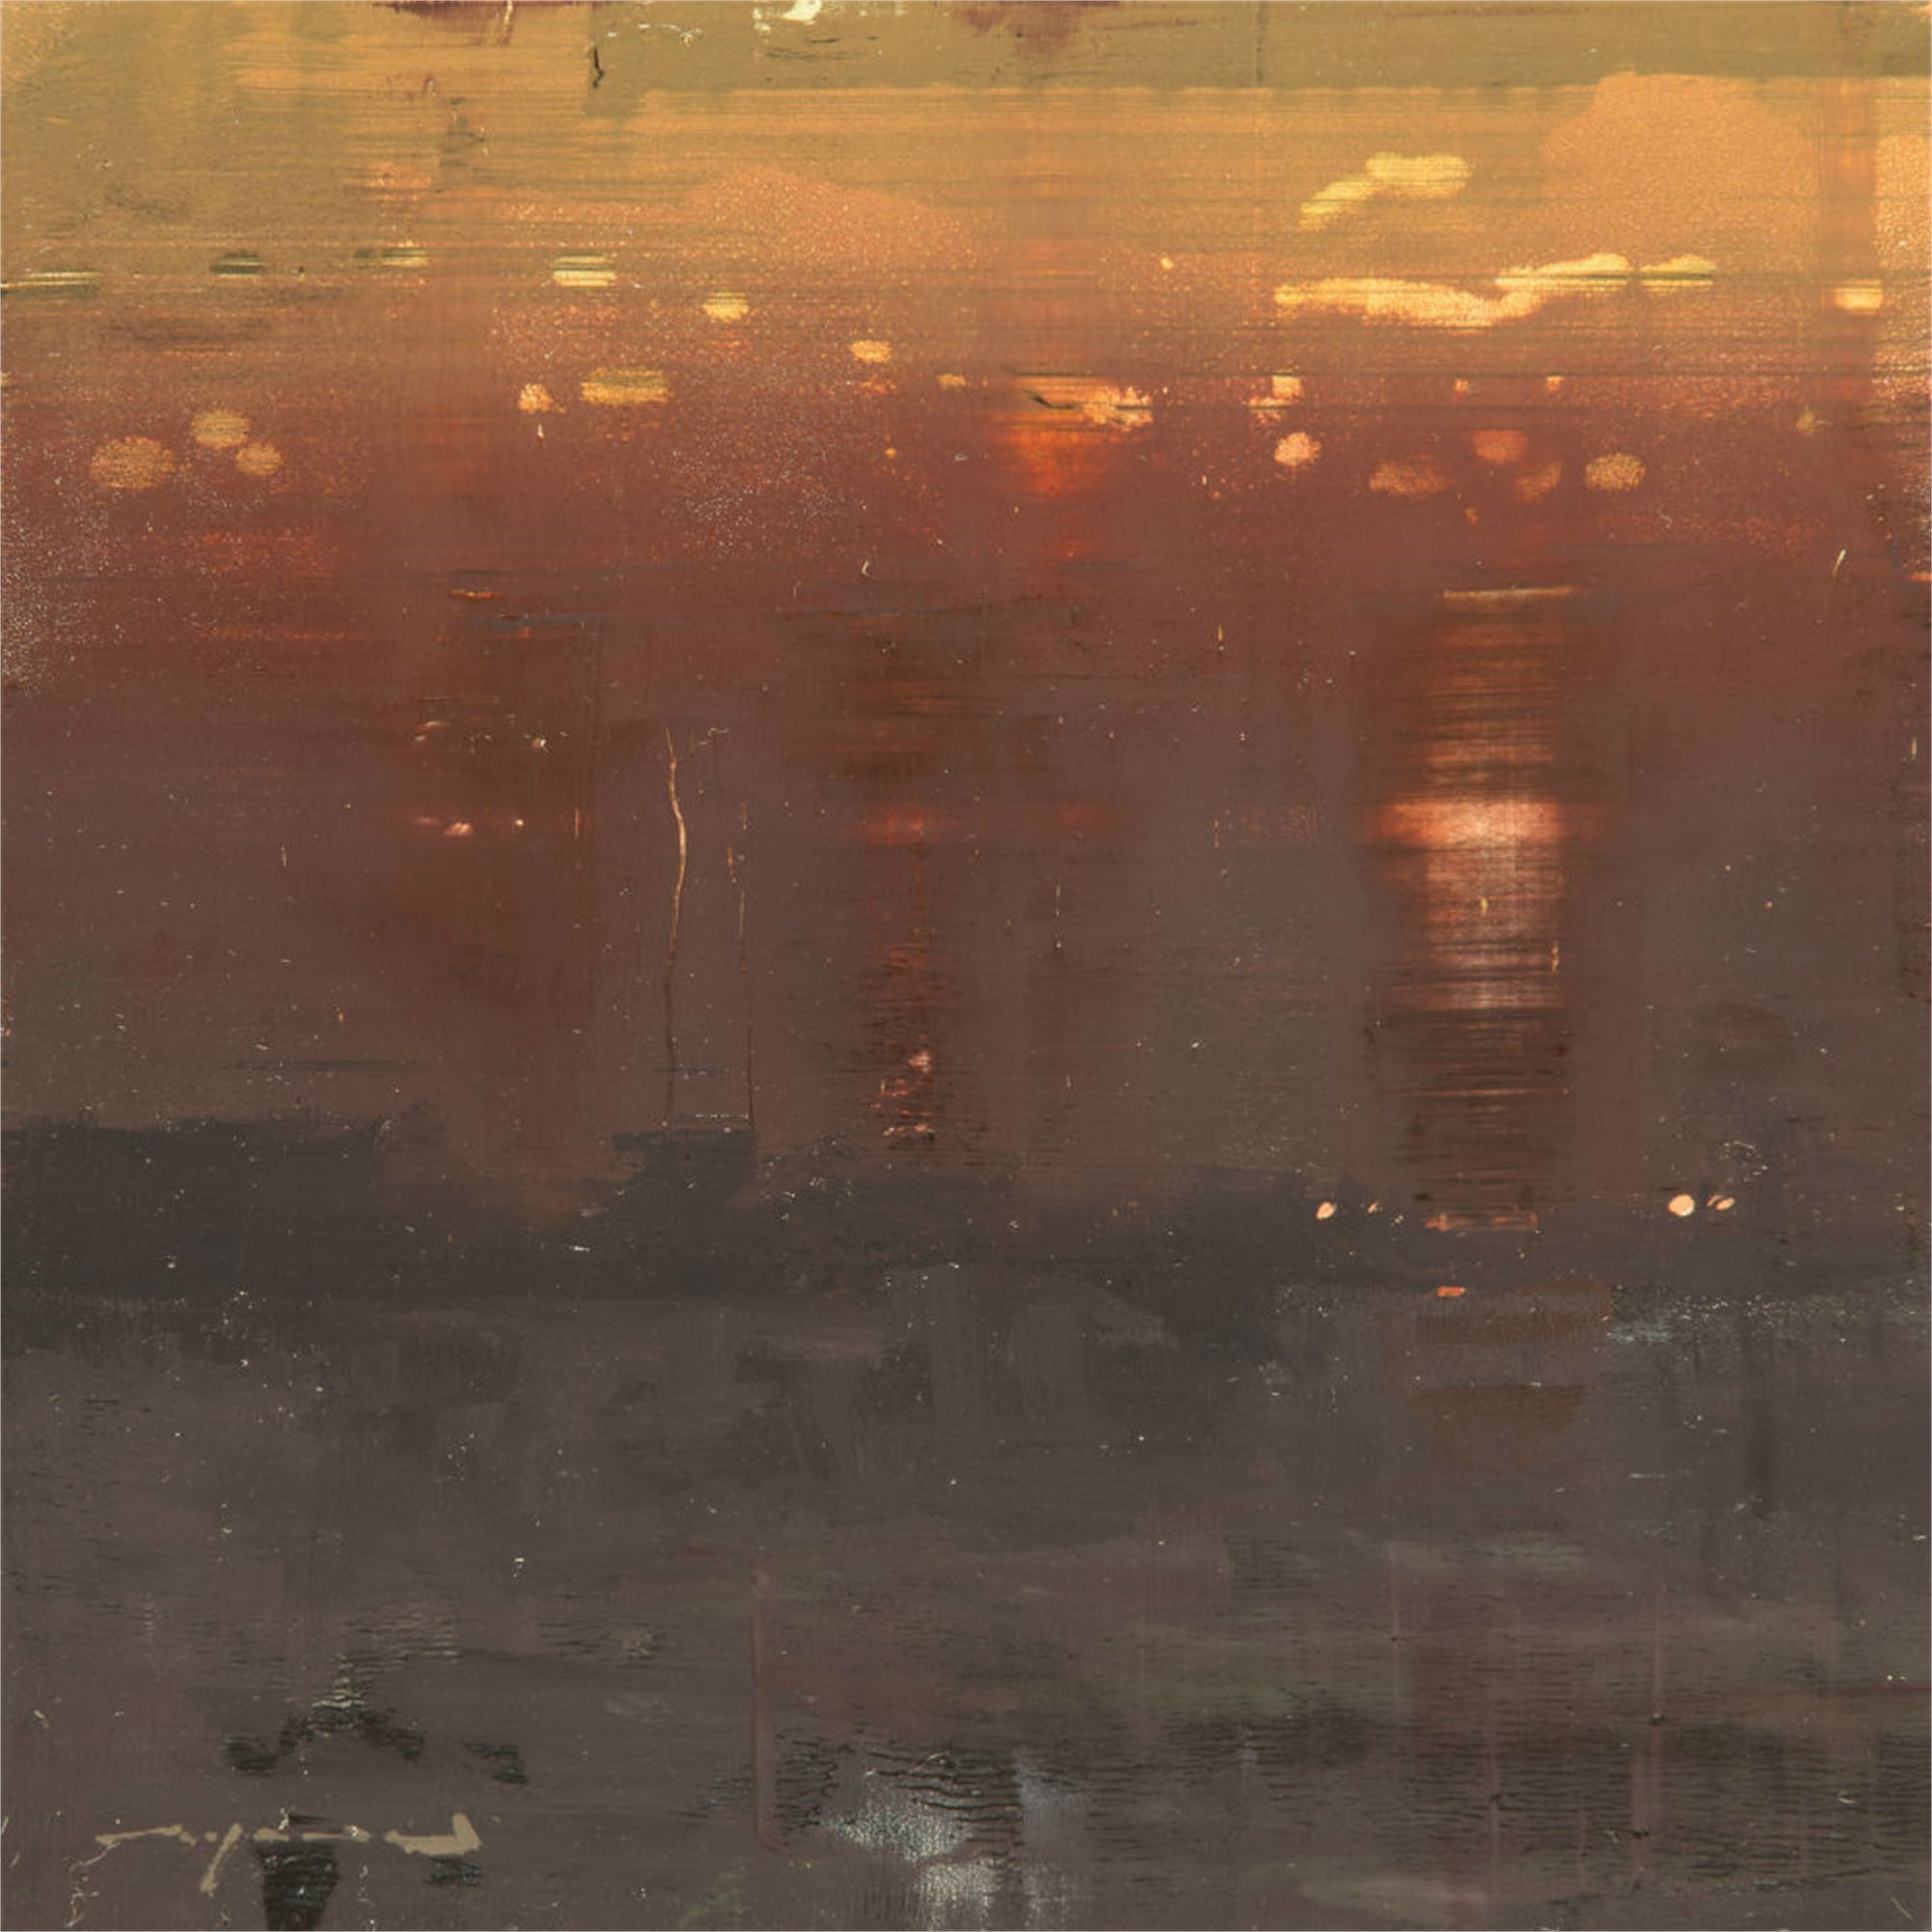 Cityscape - Composed Form Study No. 17 by Jeremy Mann